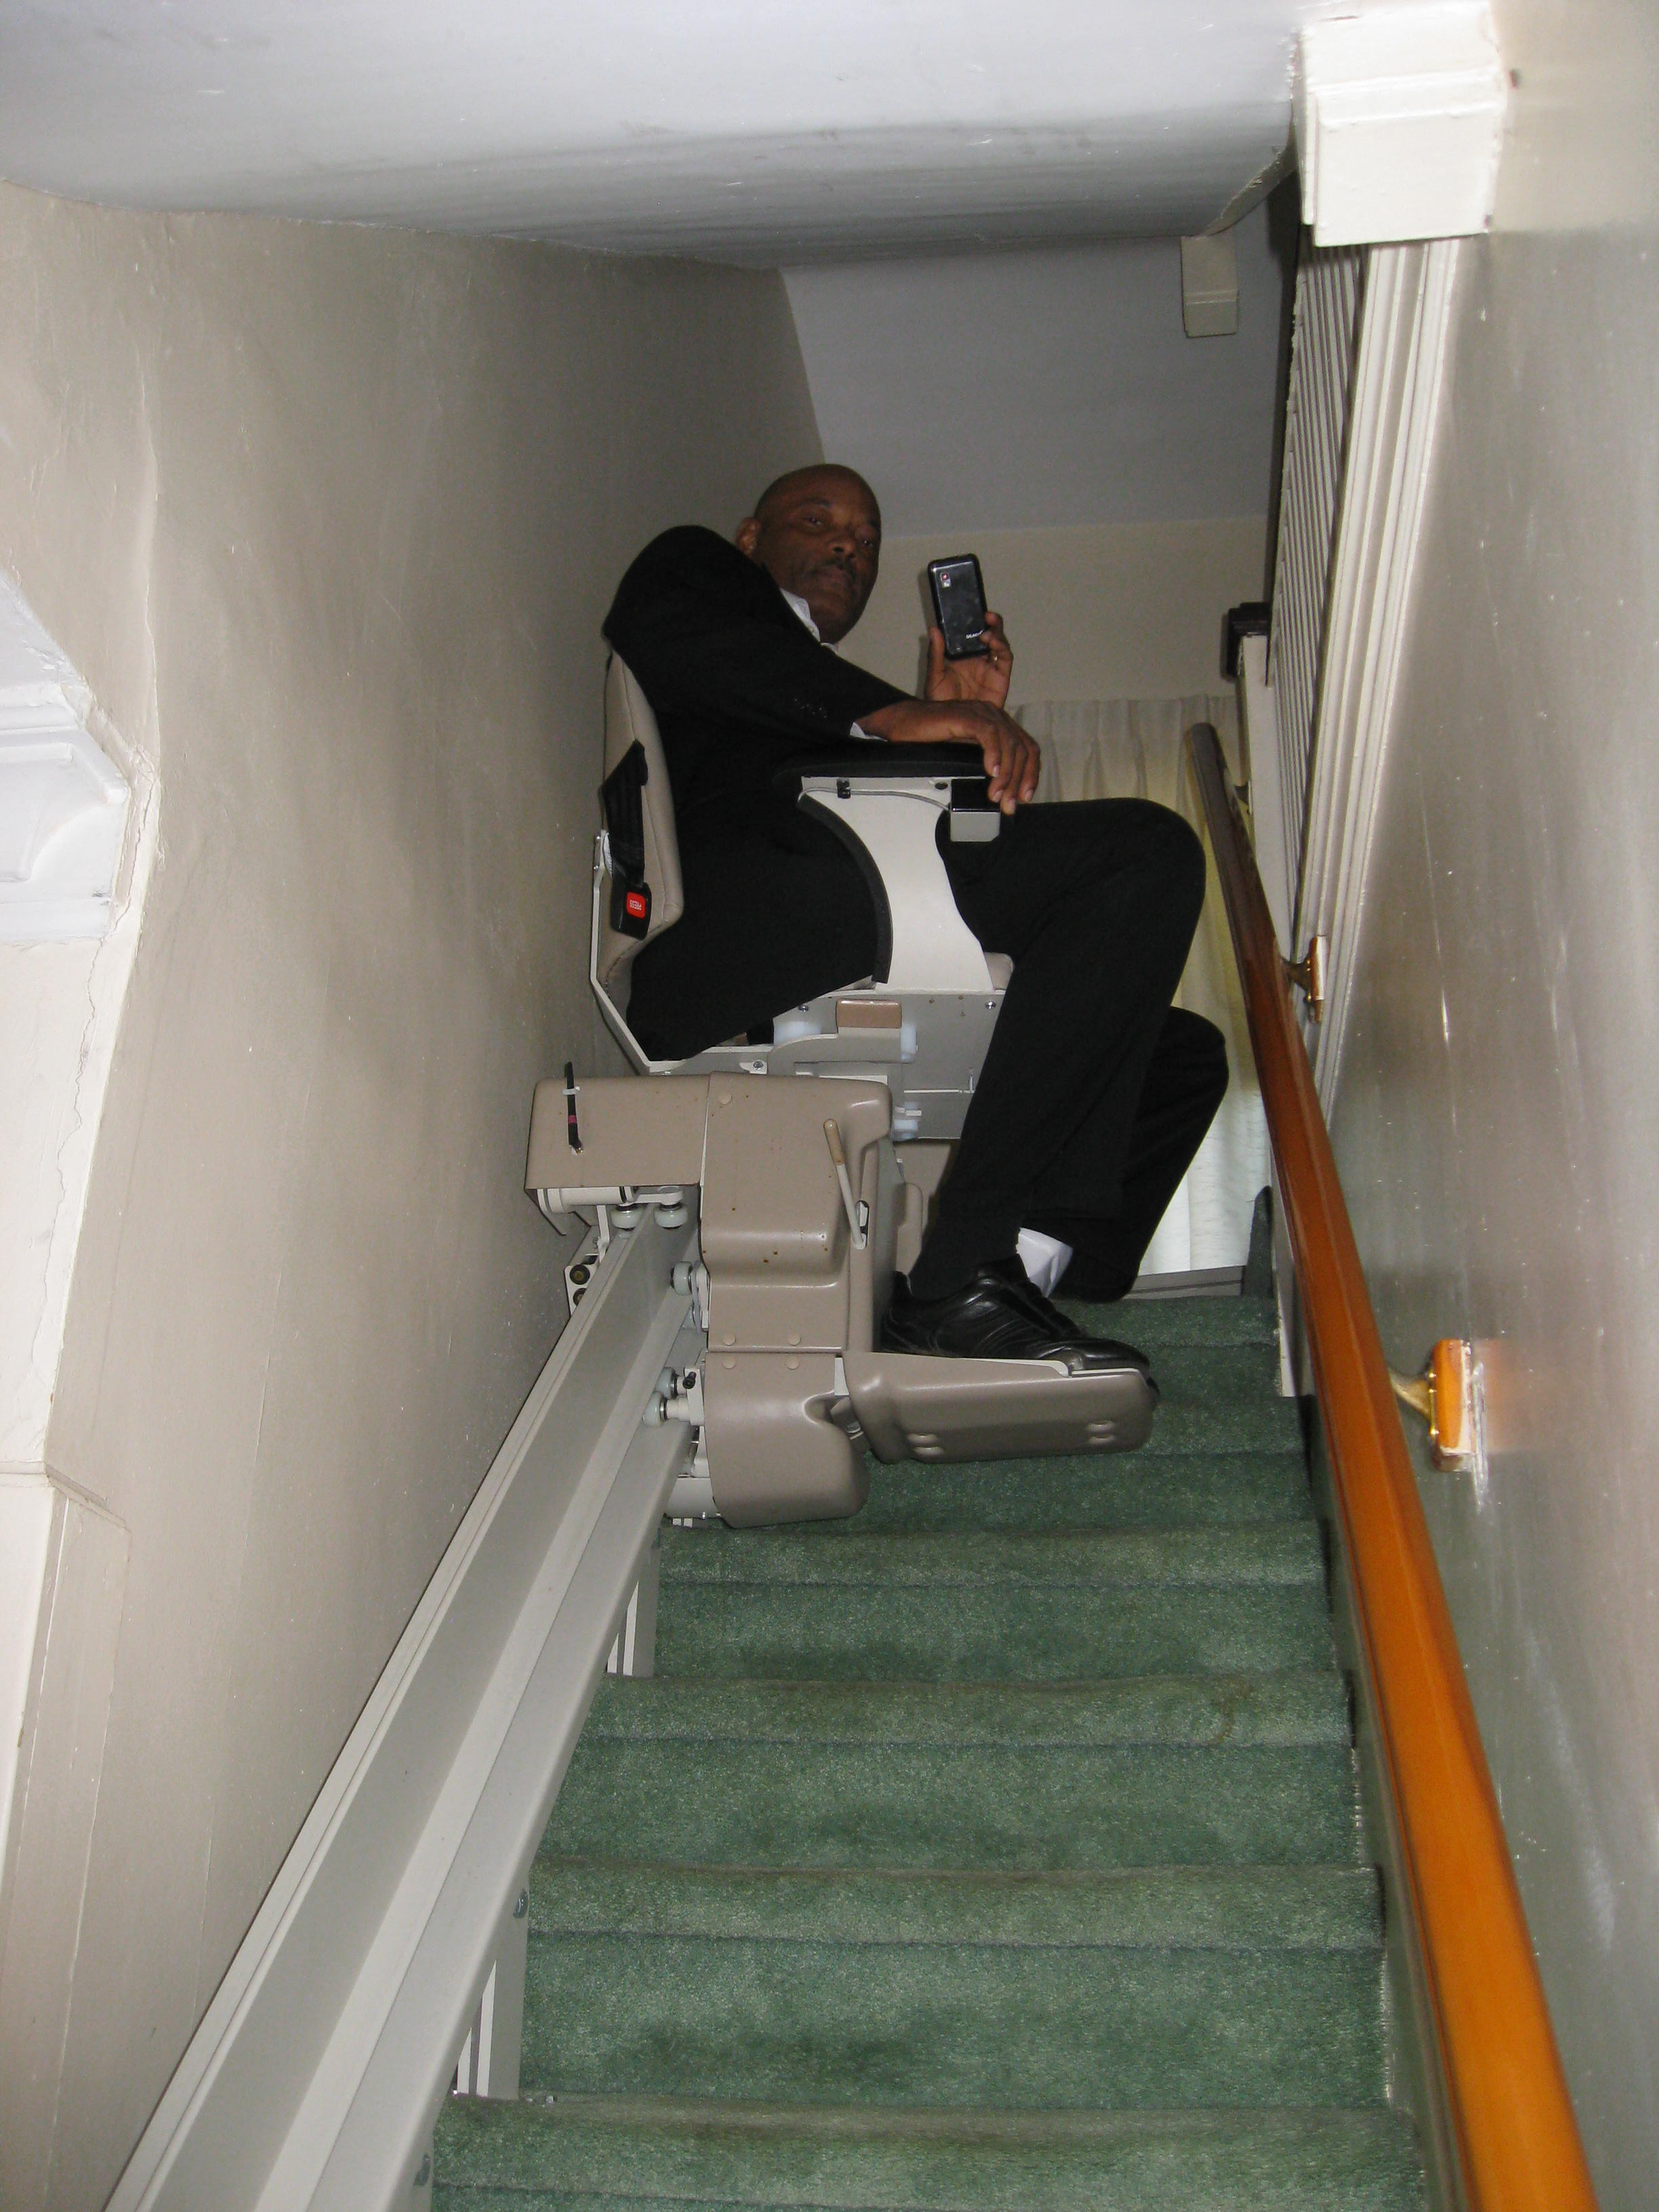 Stair Chair Lift Medicare Img 8723 Stair Chair Panamac The Experiences Of A